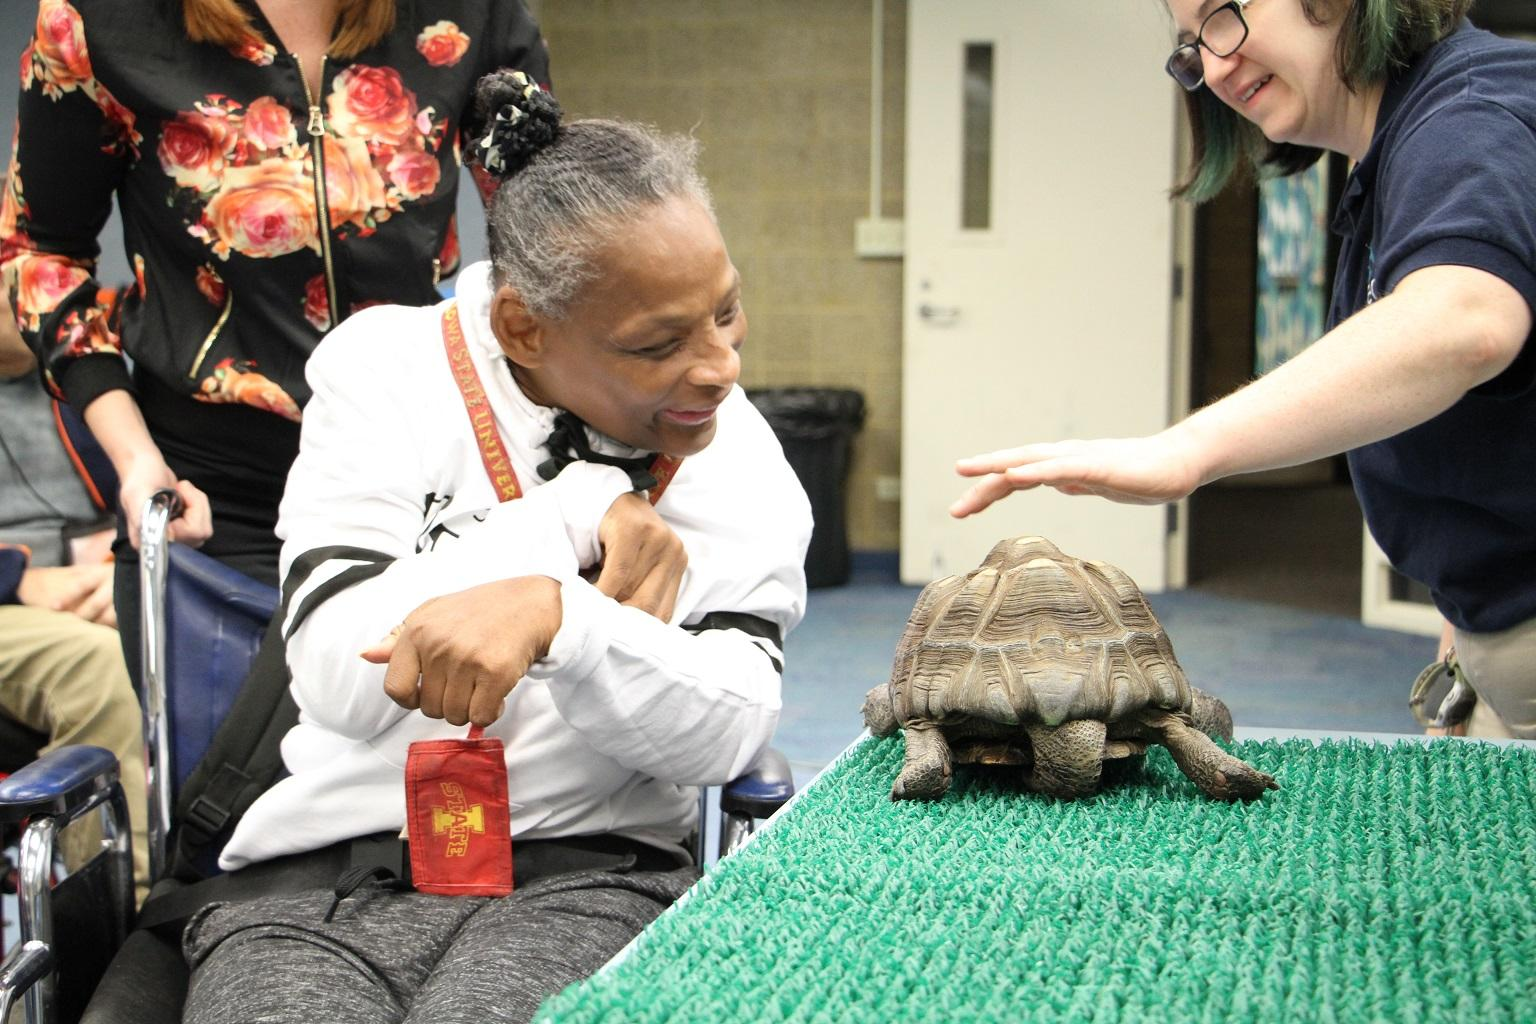 A member of the Envision Unlimited Rose Center, a program for people with intellectual and developmental disabilities, comes face-to-face with a tortoise at Shedd Aquarium. (Em Hall / Envision Unlimited)